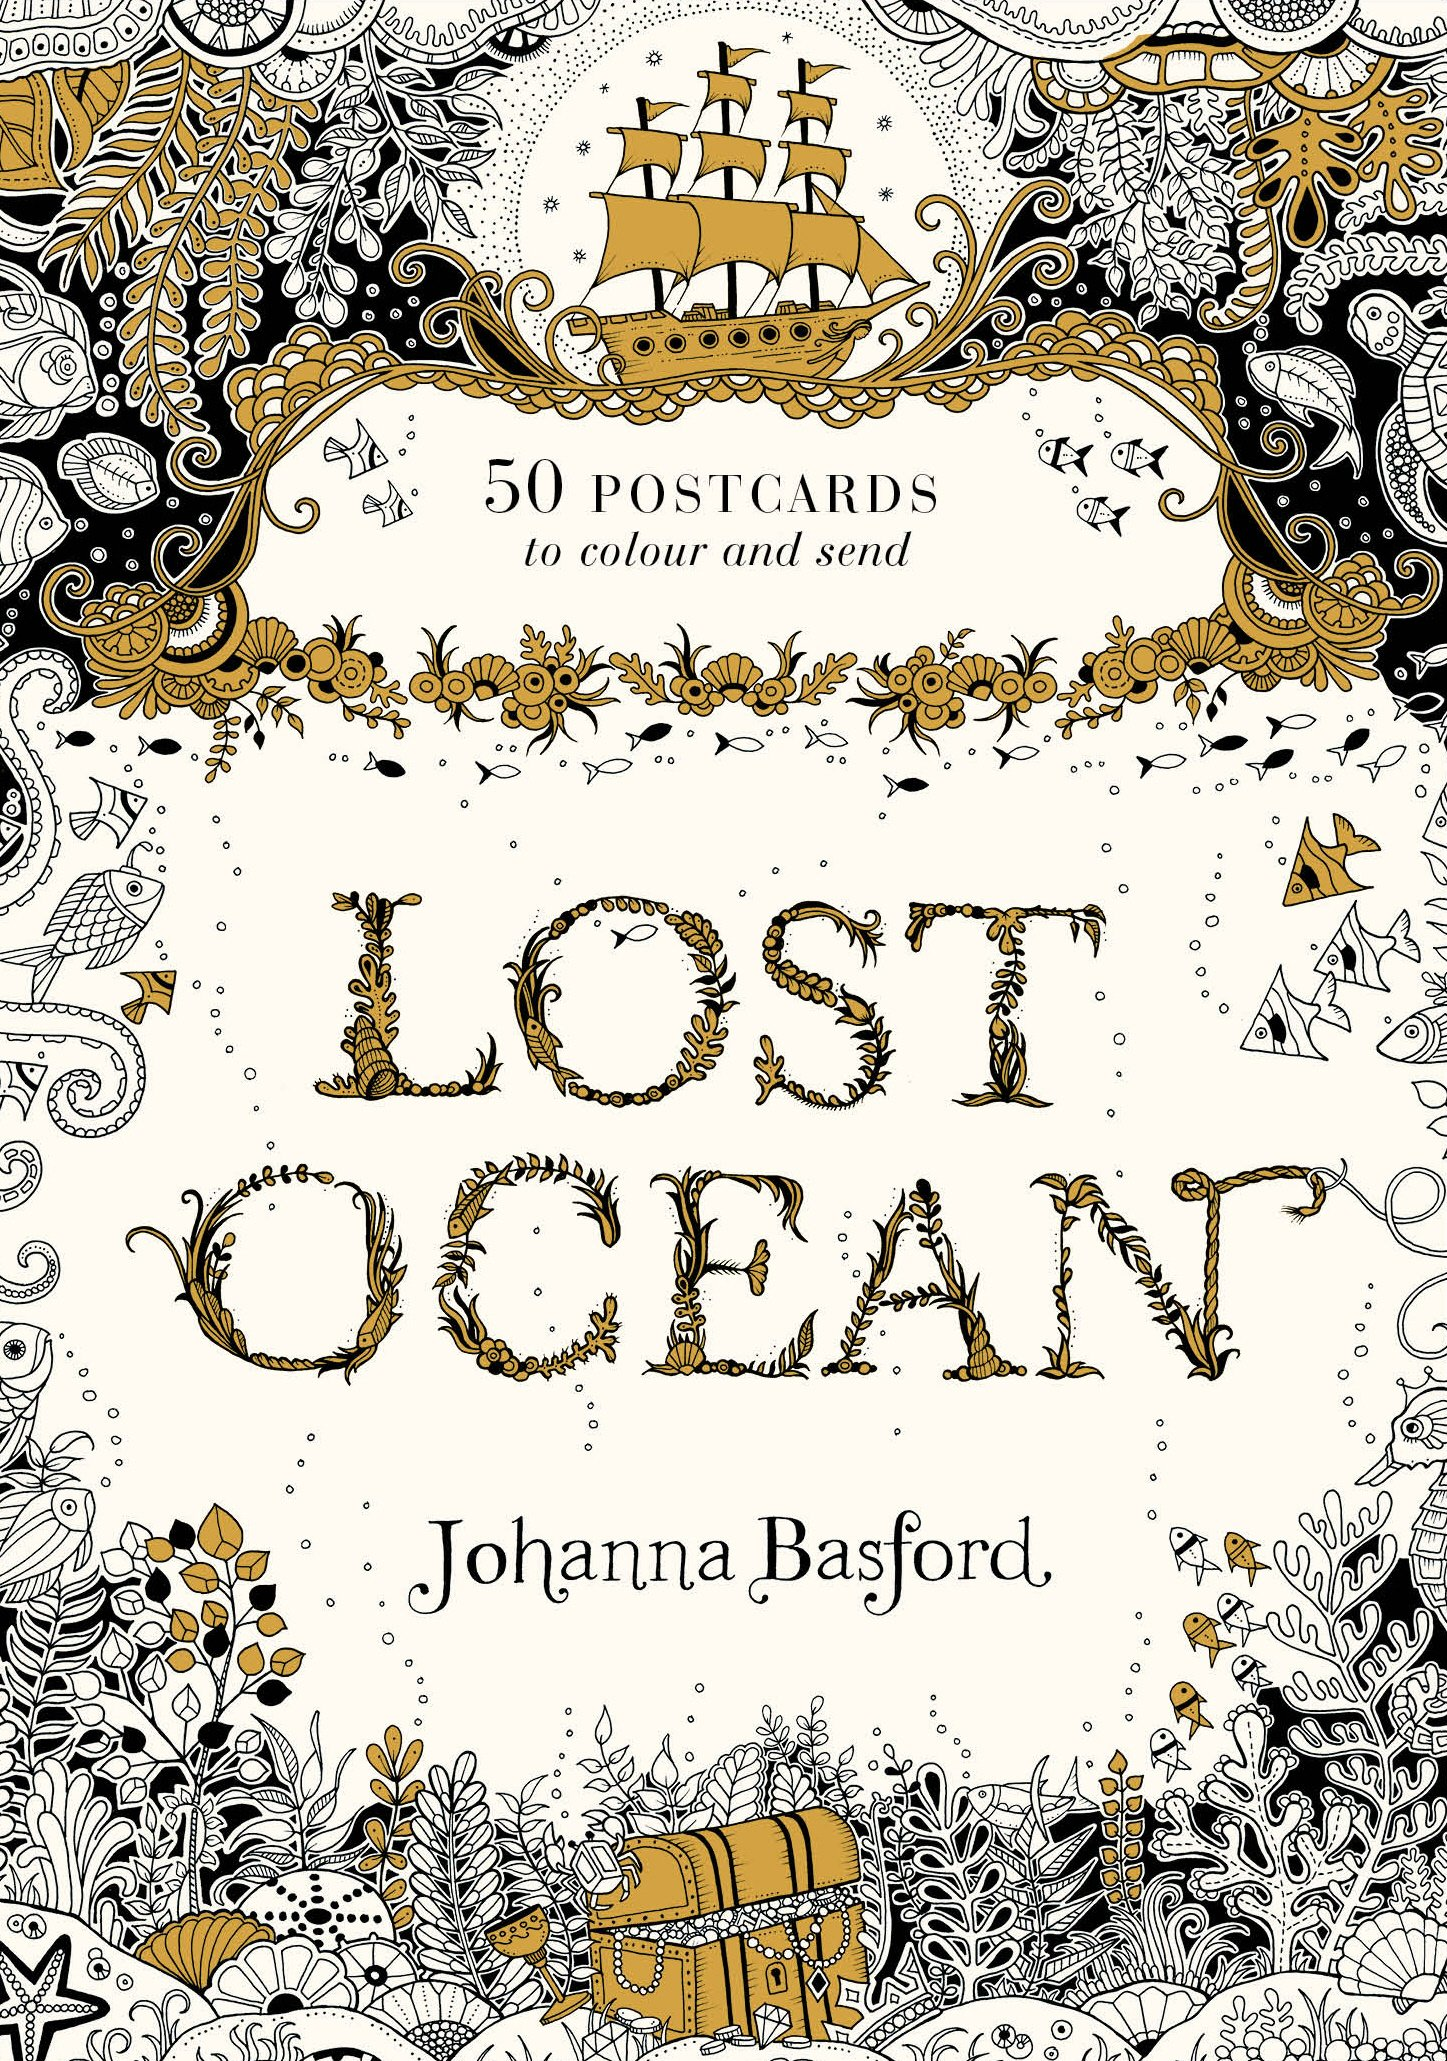 Lost Ocean Postcard Edition: 50 Postcards to Colour and Send 30pcs in one postcard take a walk on the go paris france christmas postcards greeting birthday message cards 10 2x14 2cm